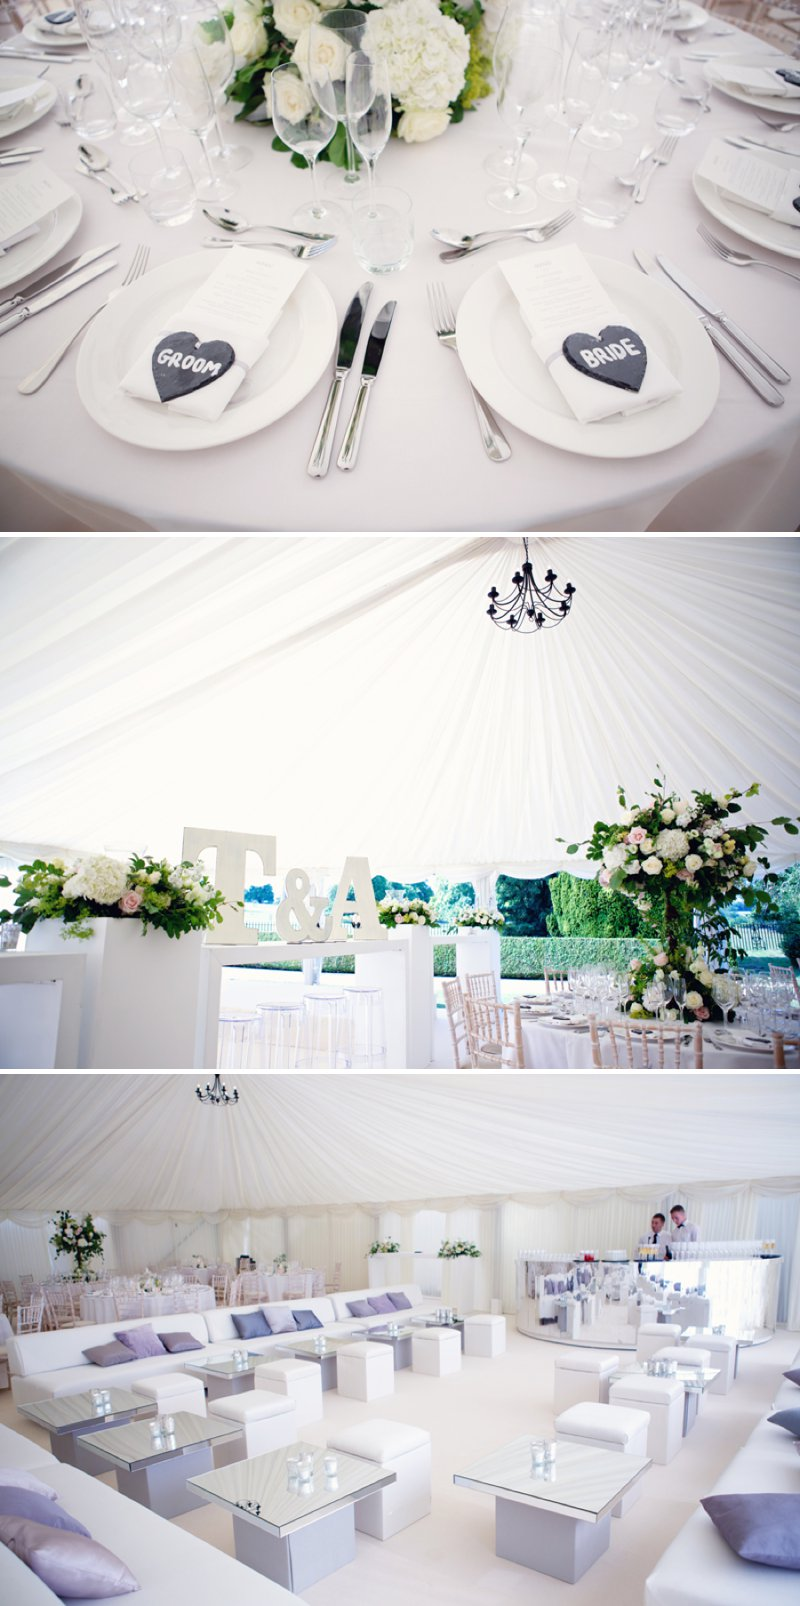 Glamorous Marquee Wedding At The Wimpole Estate In Cambridgeshire With Bride In Monique L'Huillier Gown And Jimmy Choo Sandals With Groom In Morning Suit And Red Velvet Hummingbird Bakery Cake And Images From Lydia Stamps Photography 5